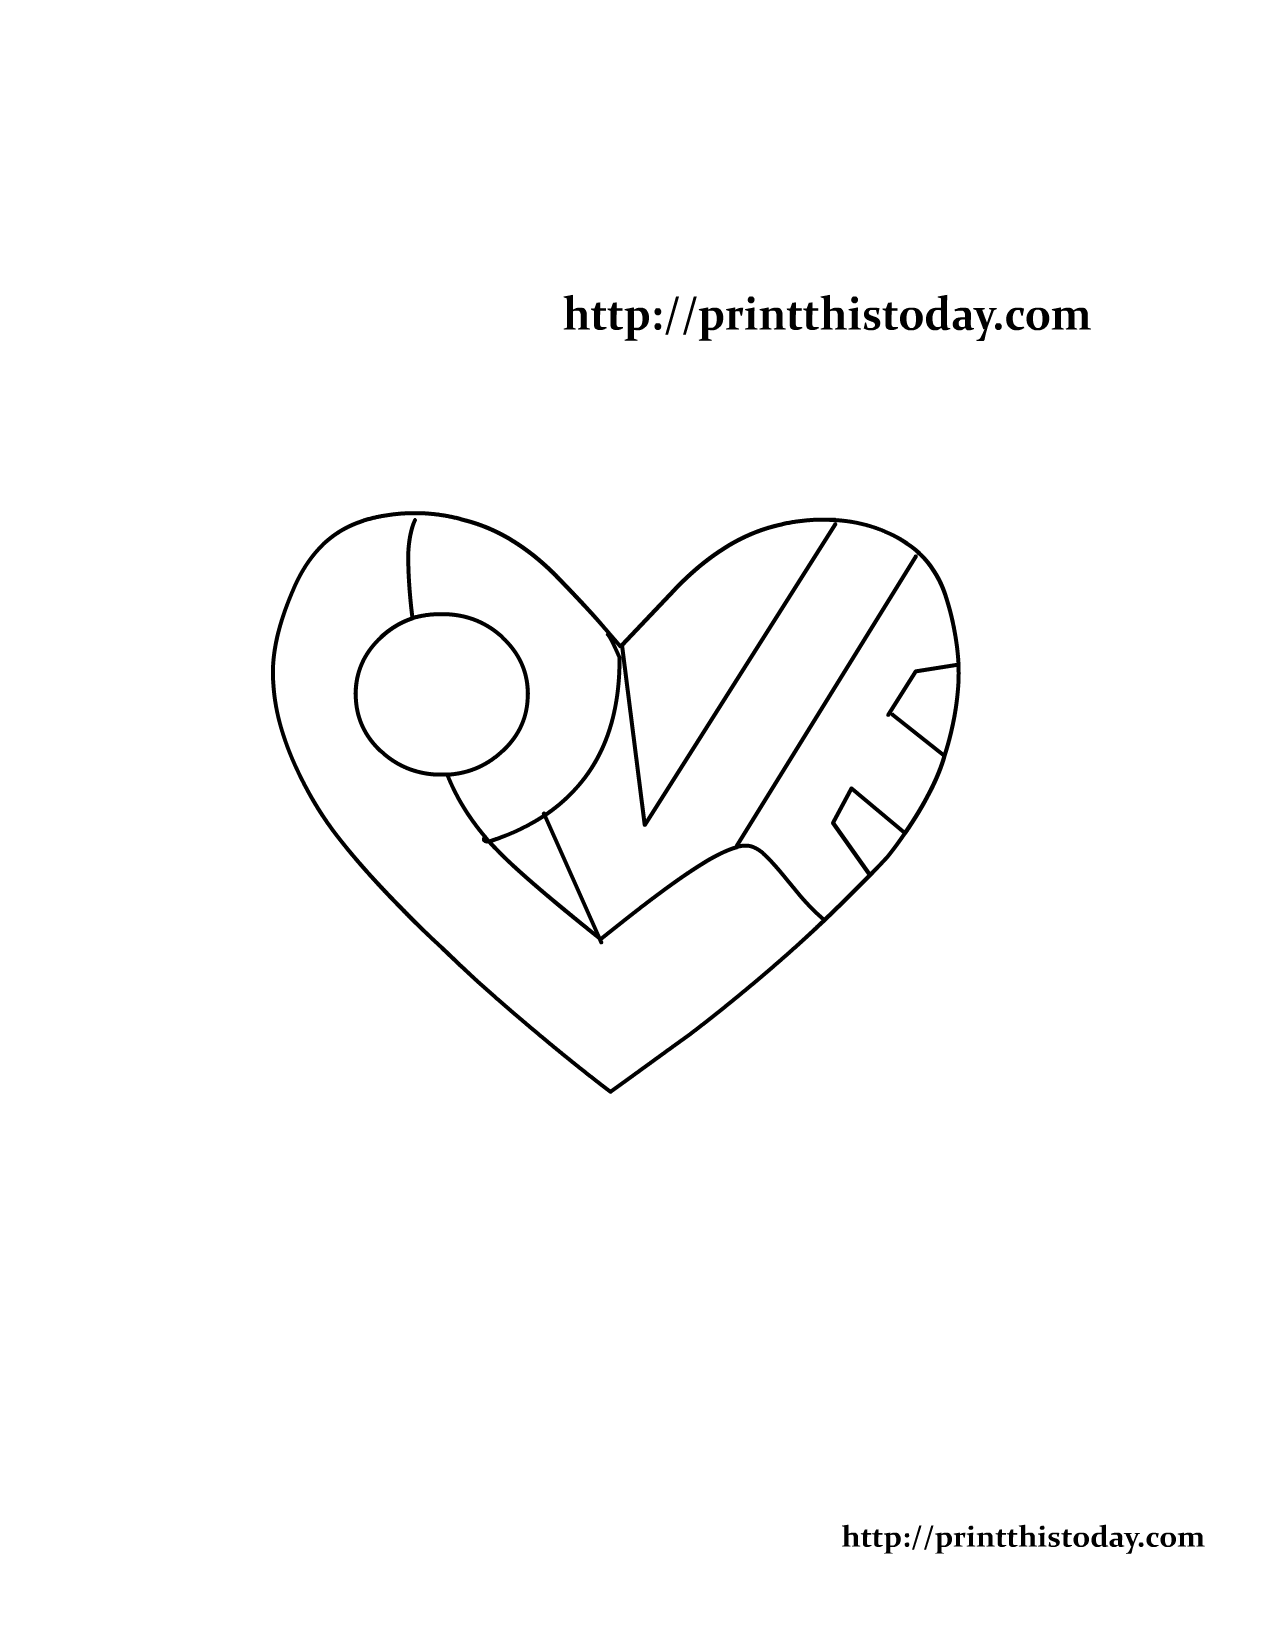 Love Word Coloring Pages On This Cute Free Printable Love Themed Coloring Page The Word Love Love Coloring Pages Heart Coloring Pages Quote Coloring Pages